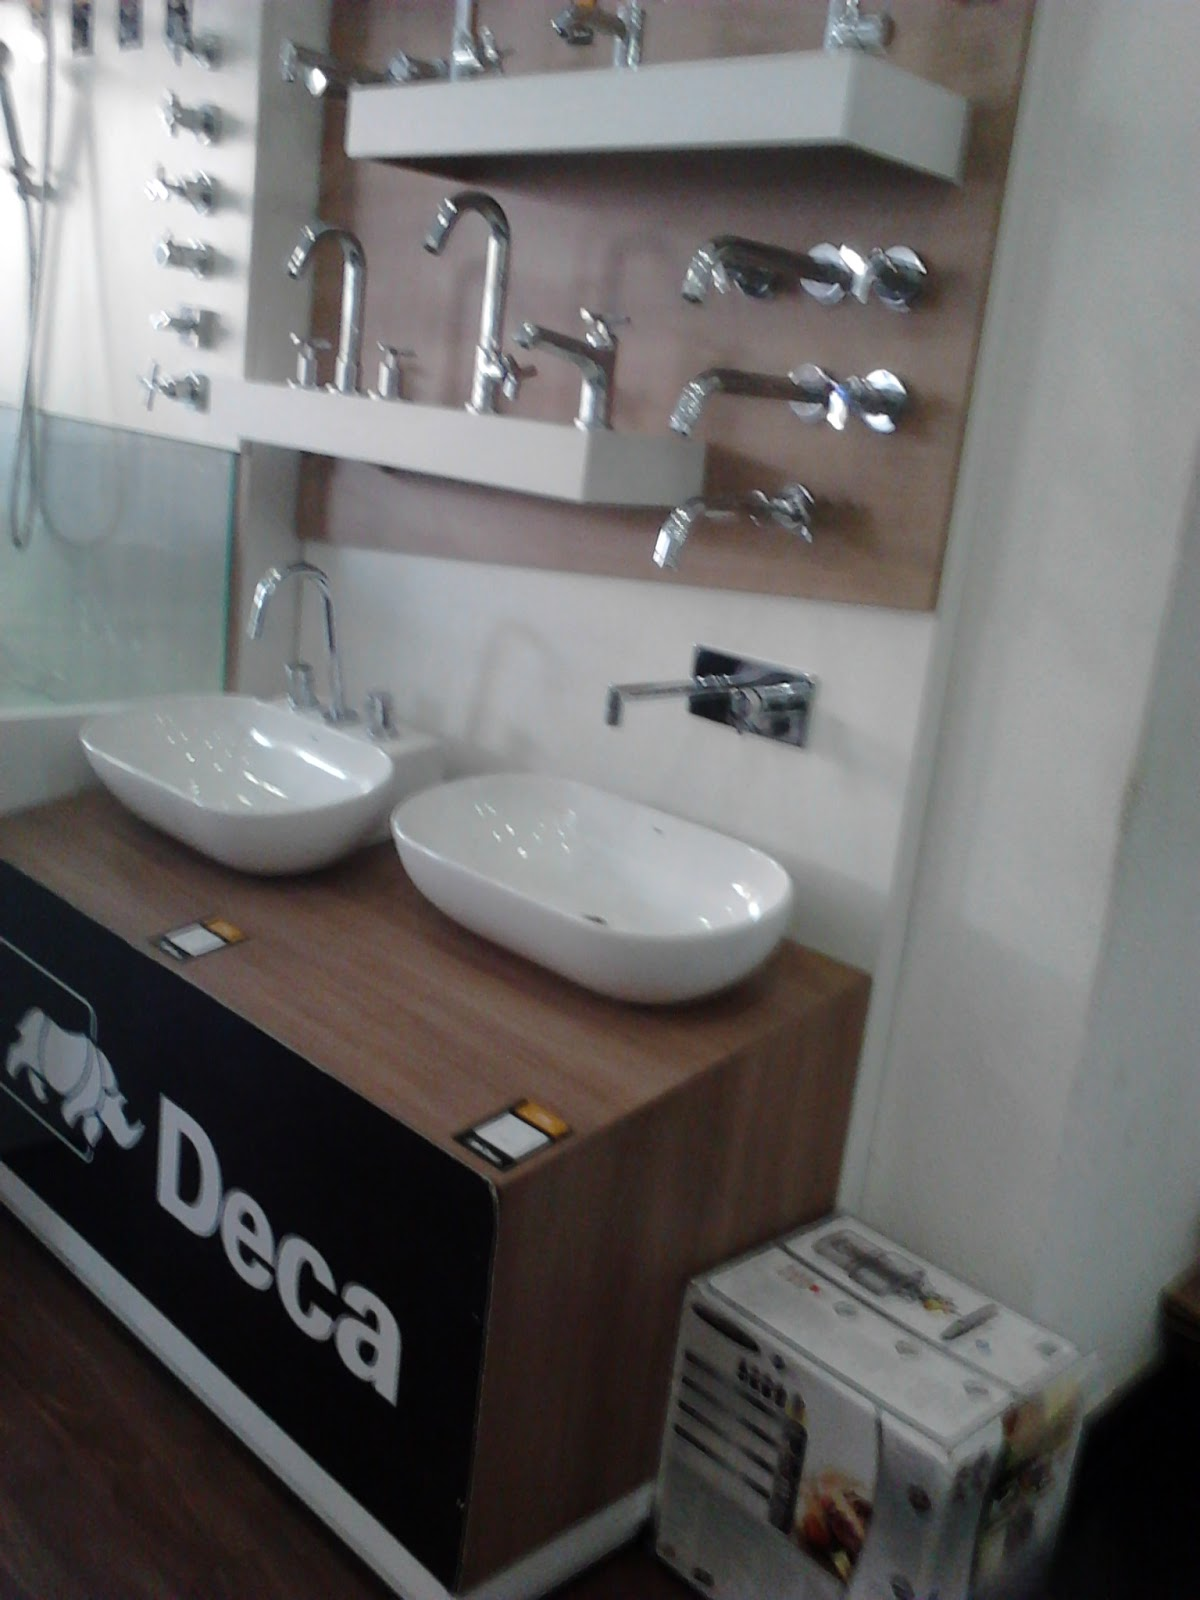 Sarah Decor & Design: Metais Cubas Deca #604E46 1200 1600